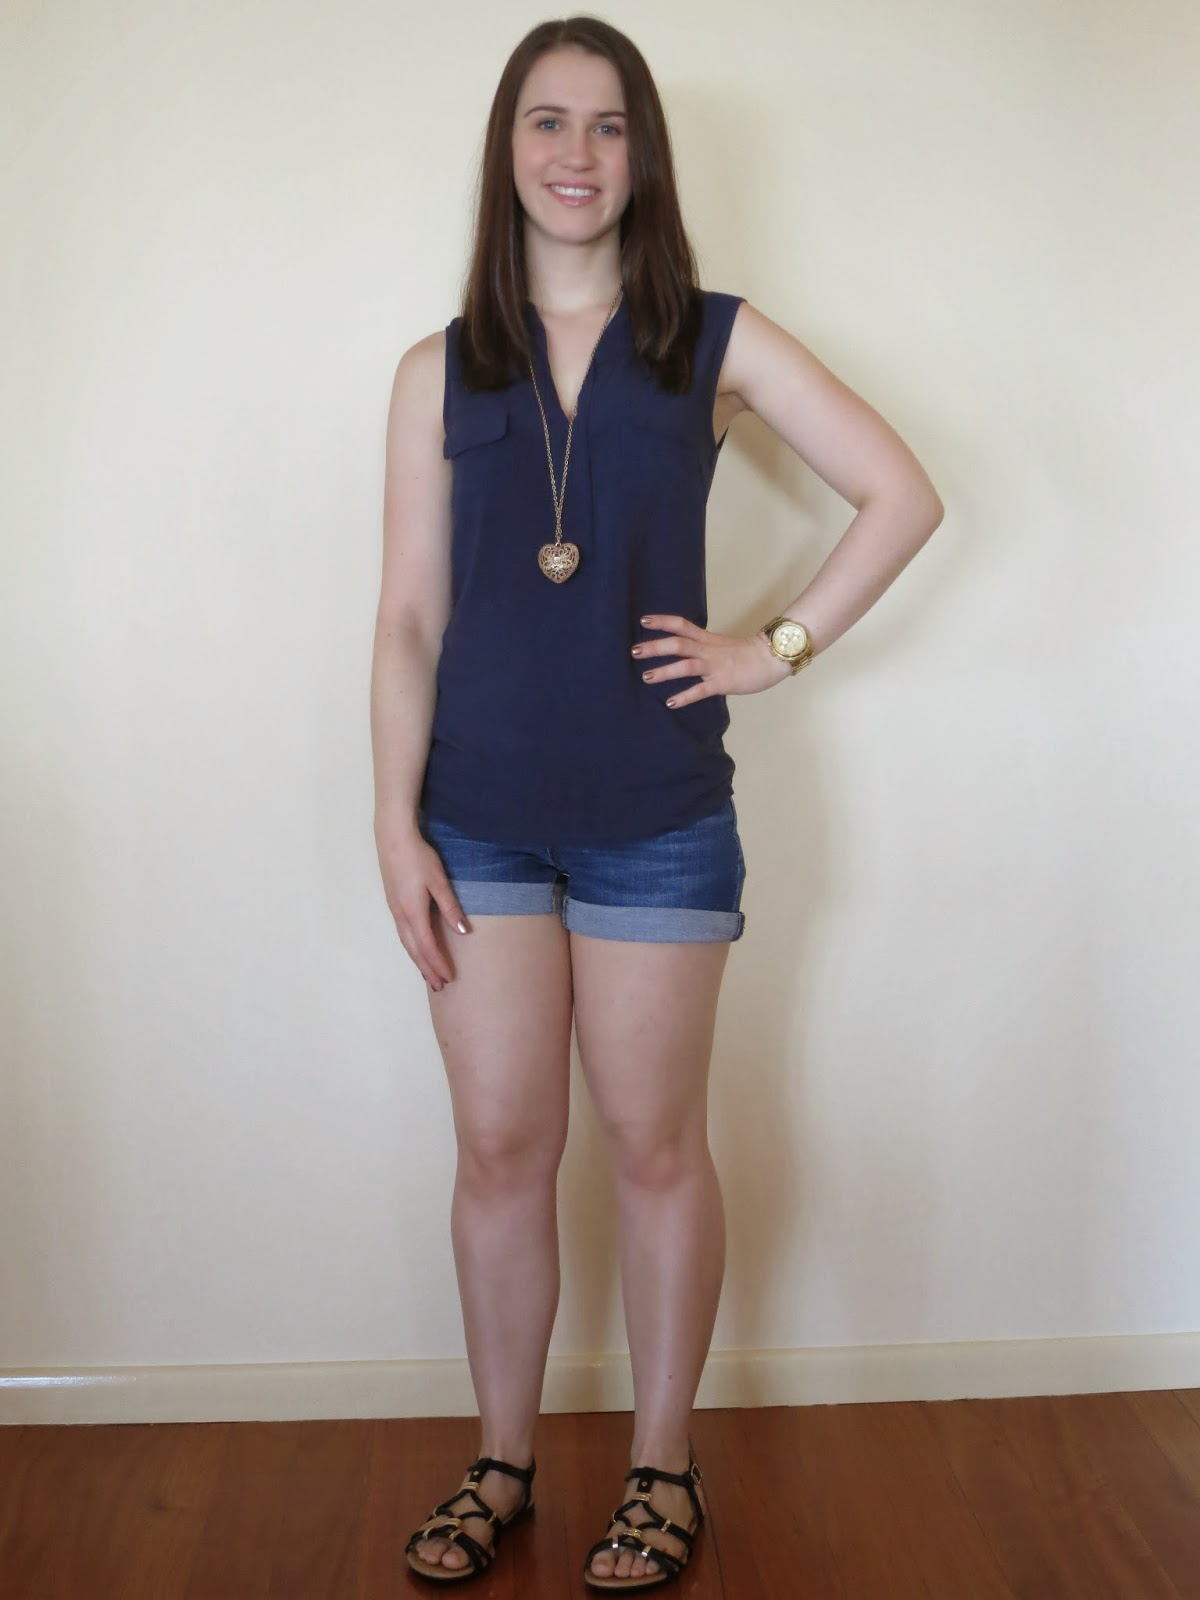 petite outfit, petite everyday outfit, everyday outfit, navy top, dark wash denim shorts, gold jewellery, black sandals and bag with gold hardwar